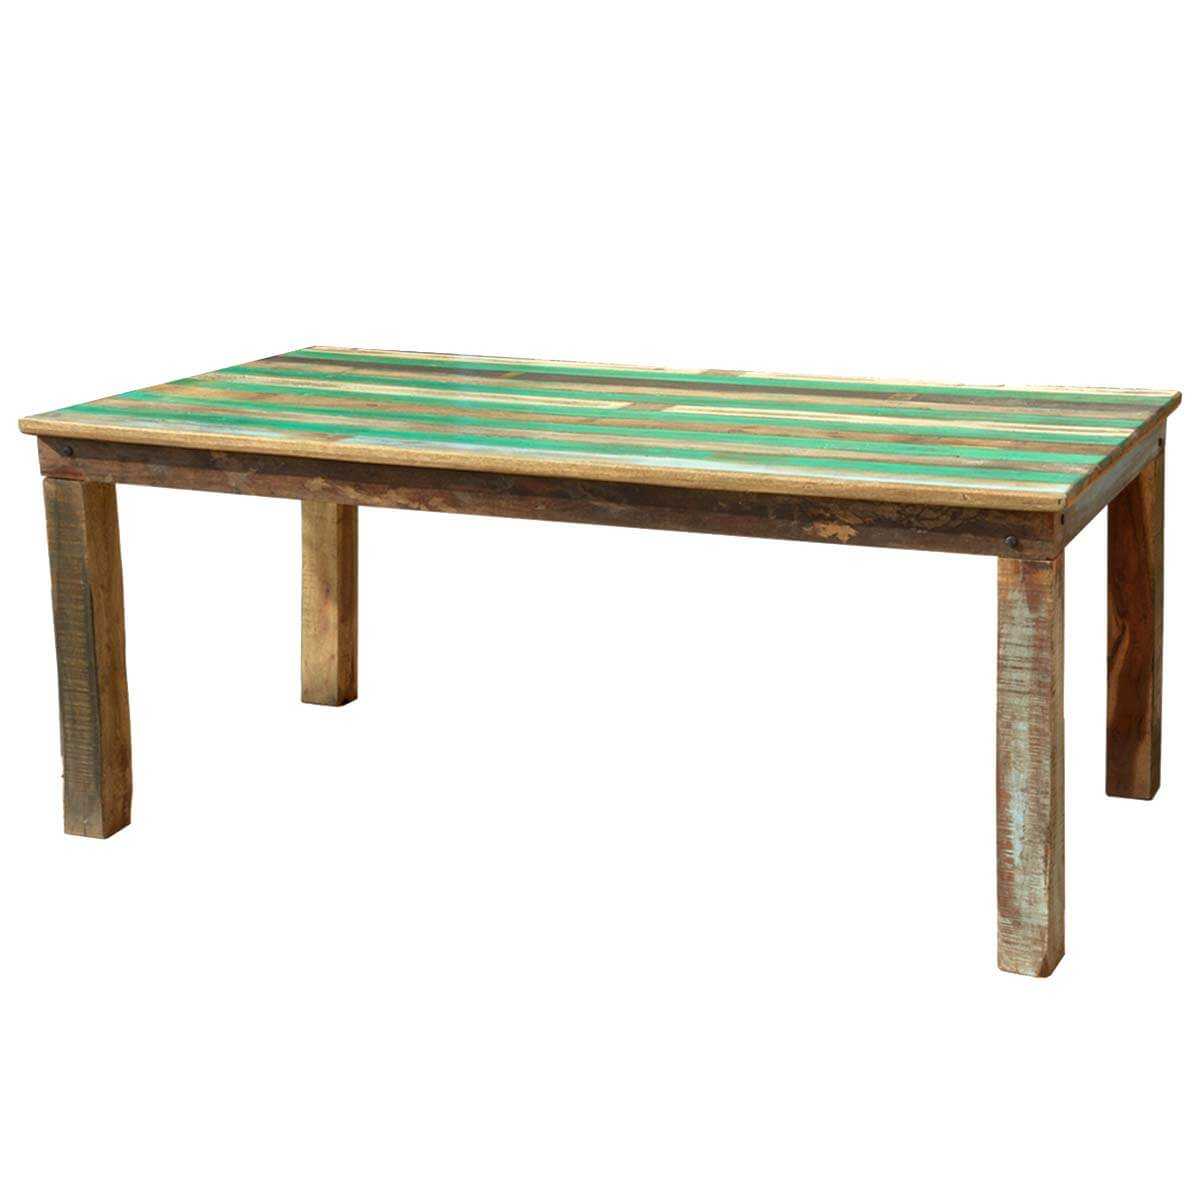 Appalachian Rustic Reclaimed Wood Striped Top Dining Table